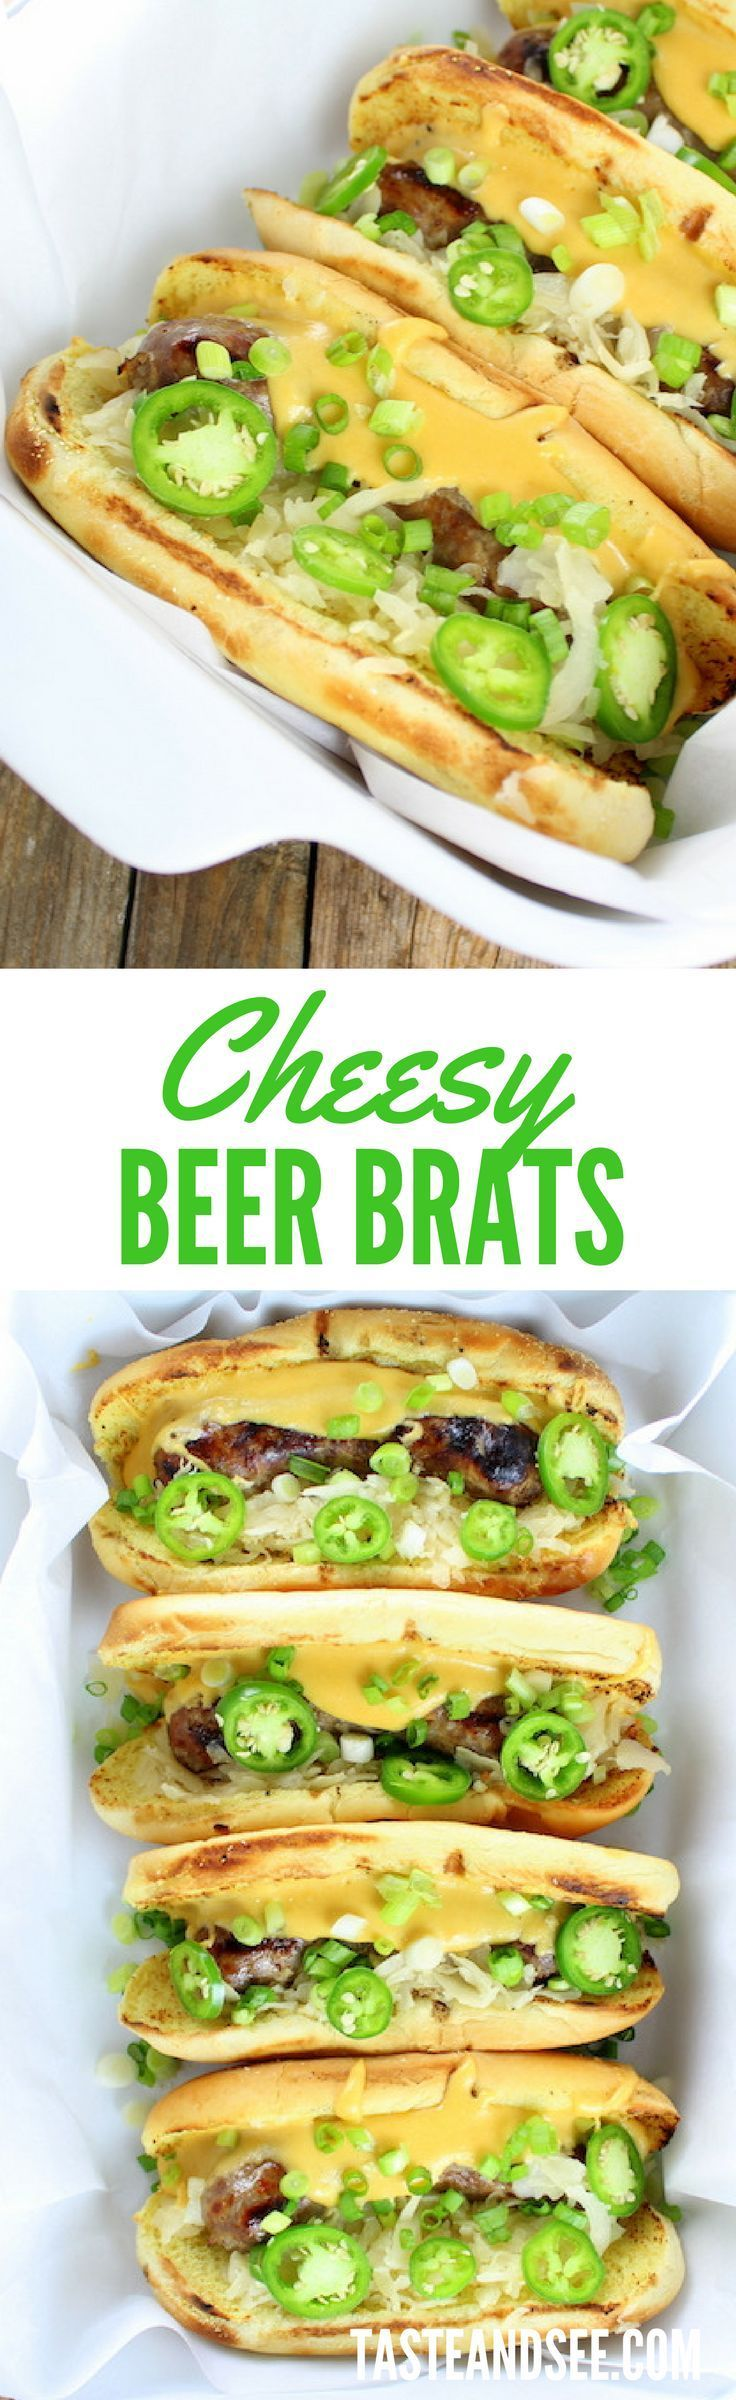 Cheesy Beer Brats w/ Fried Pickles- topped with cheesy sauce, sauerkraut, & Sriracha ketchup.  http://tasteandsee.com